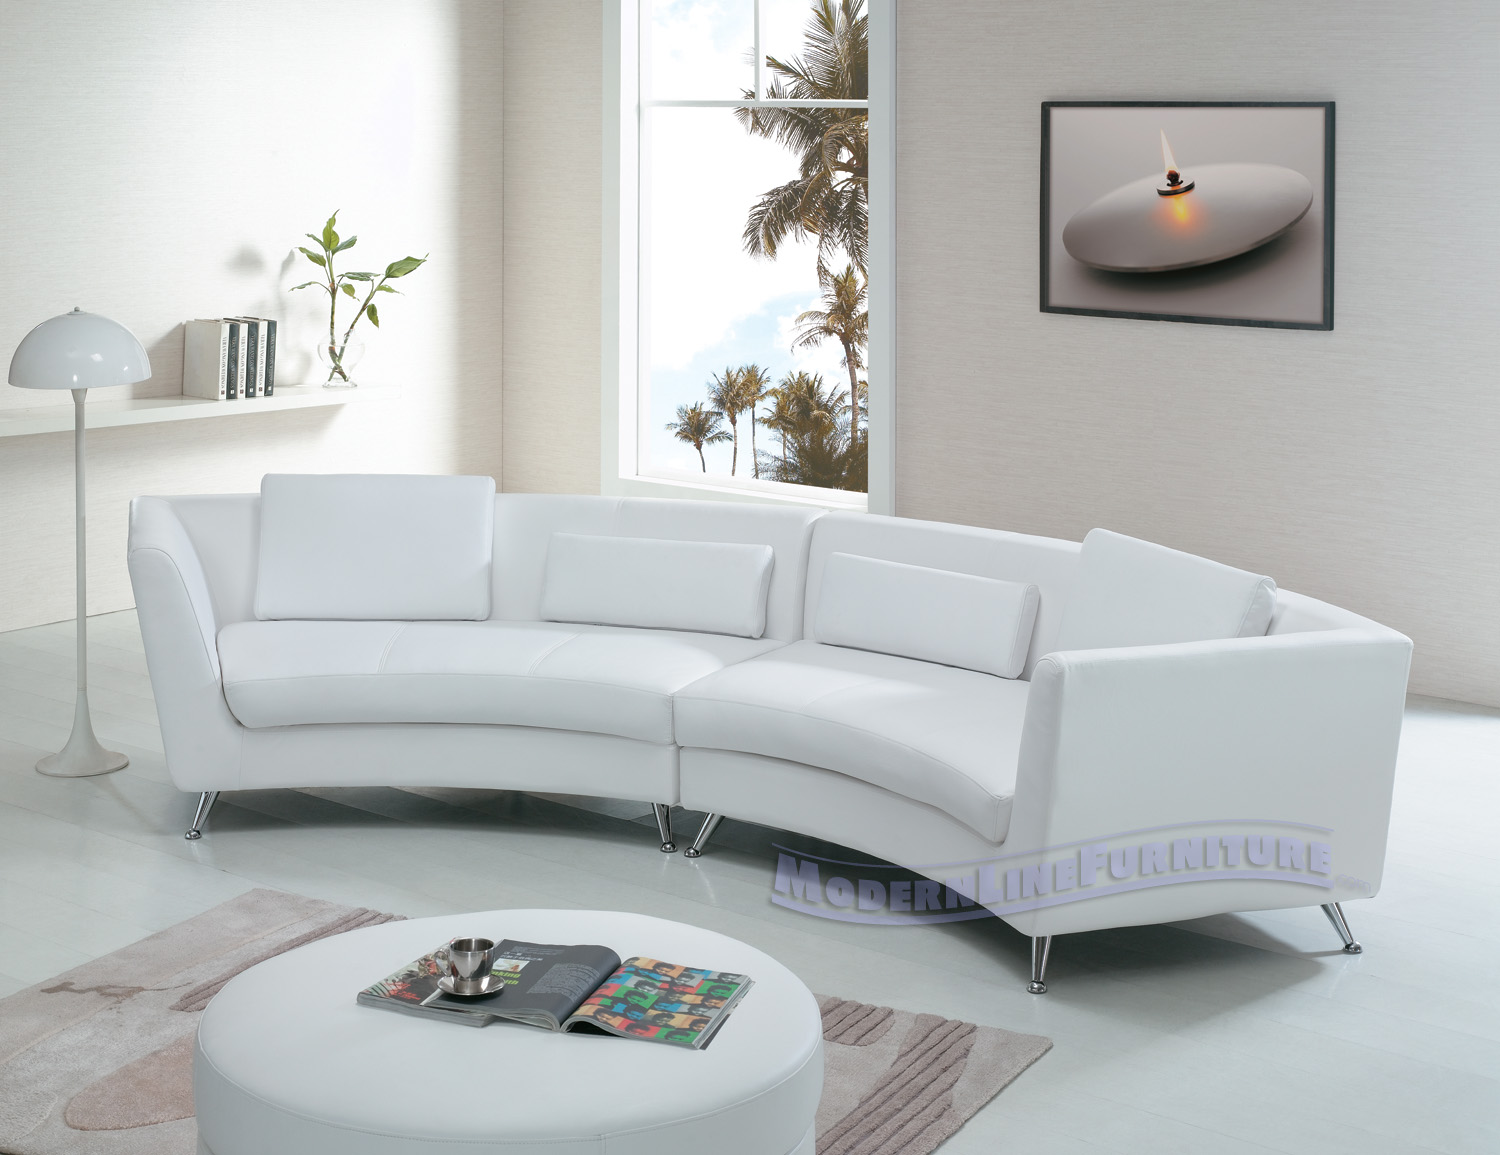 Modern Line Furniture   Commercial Furniture   Custom Made Furniture |  Seating Collection | | | Contemporary White Long Curved Sofa